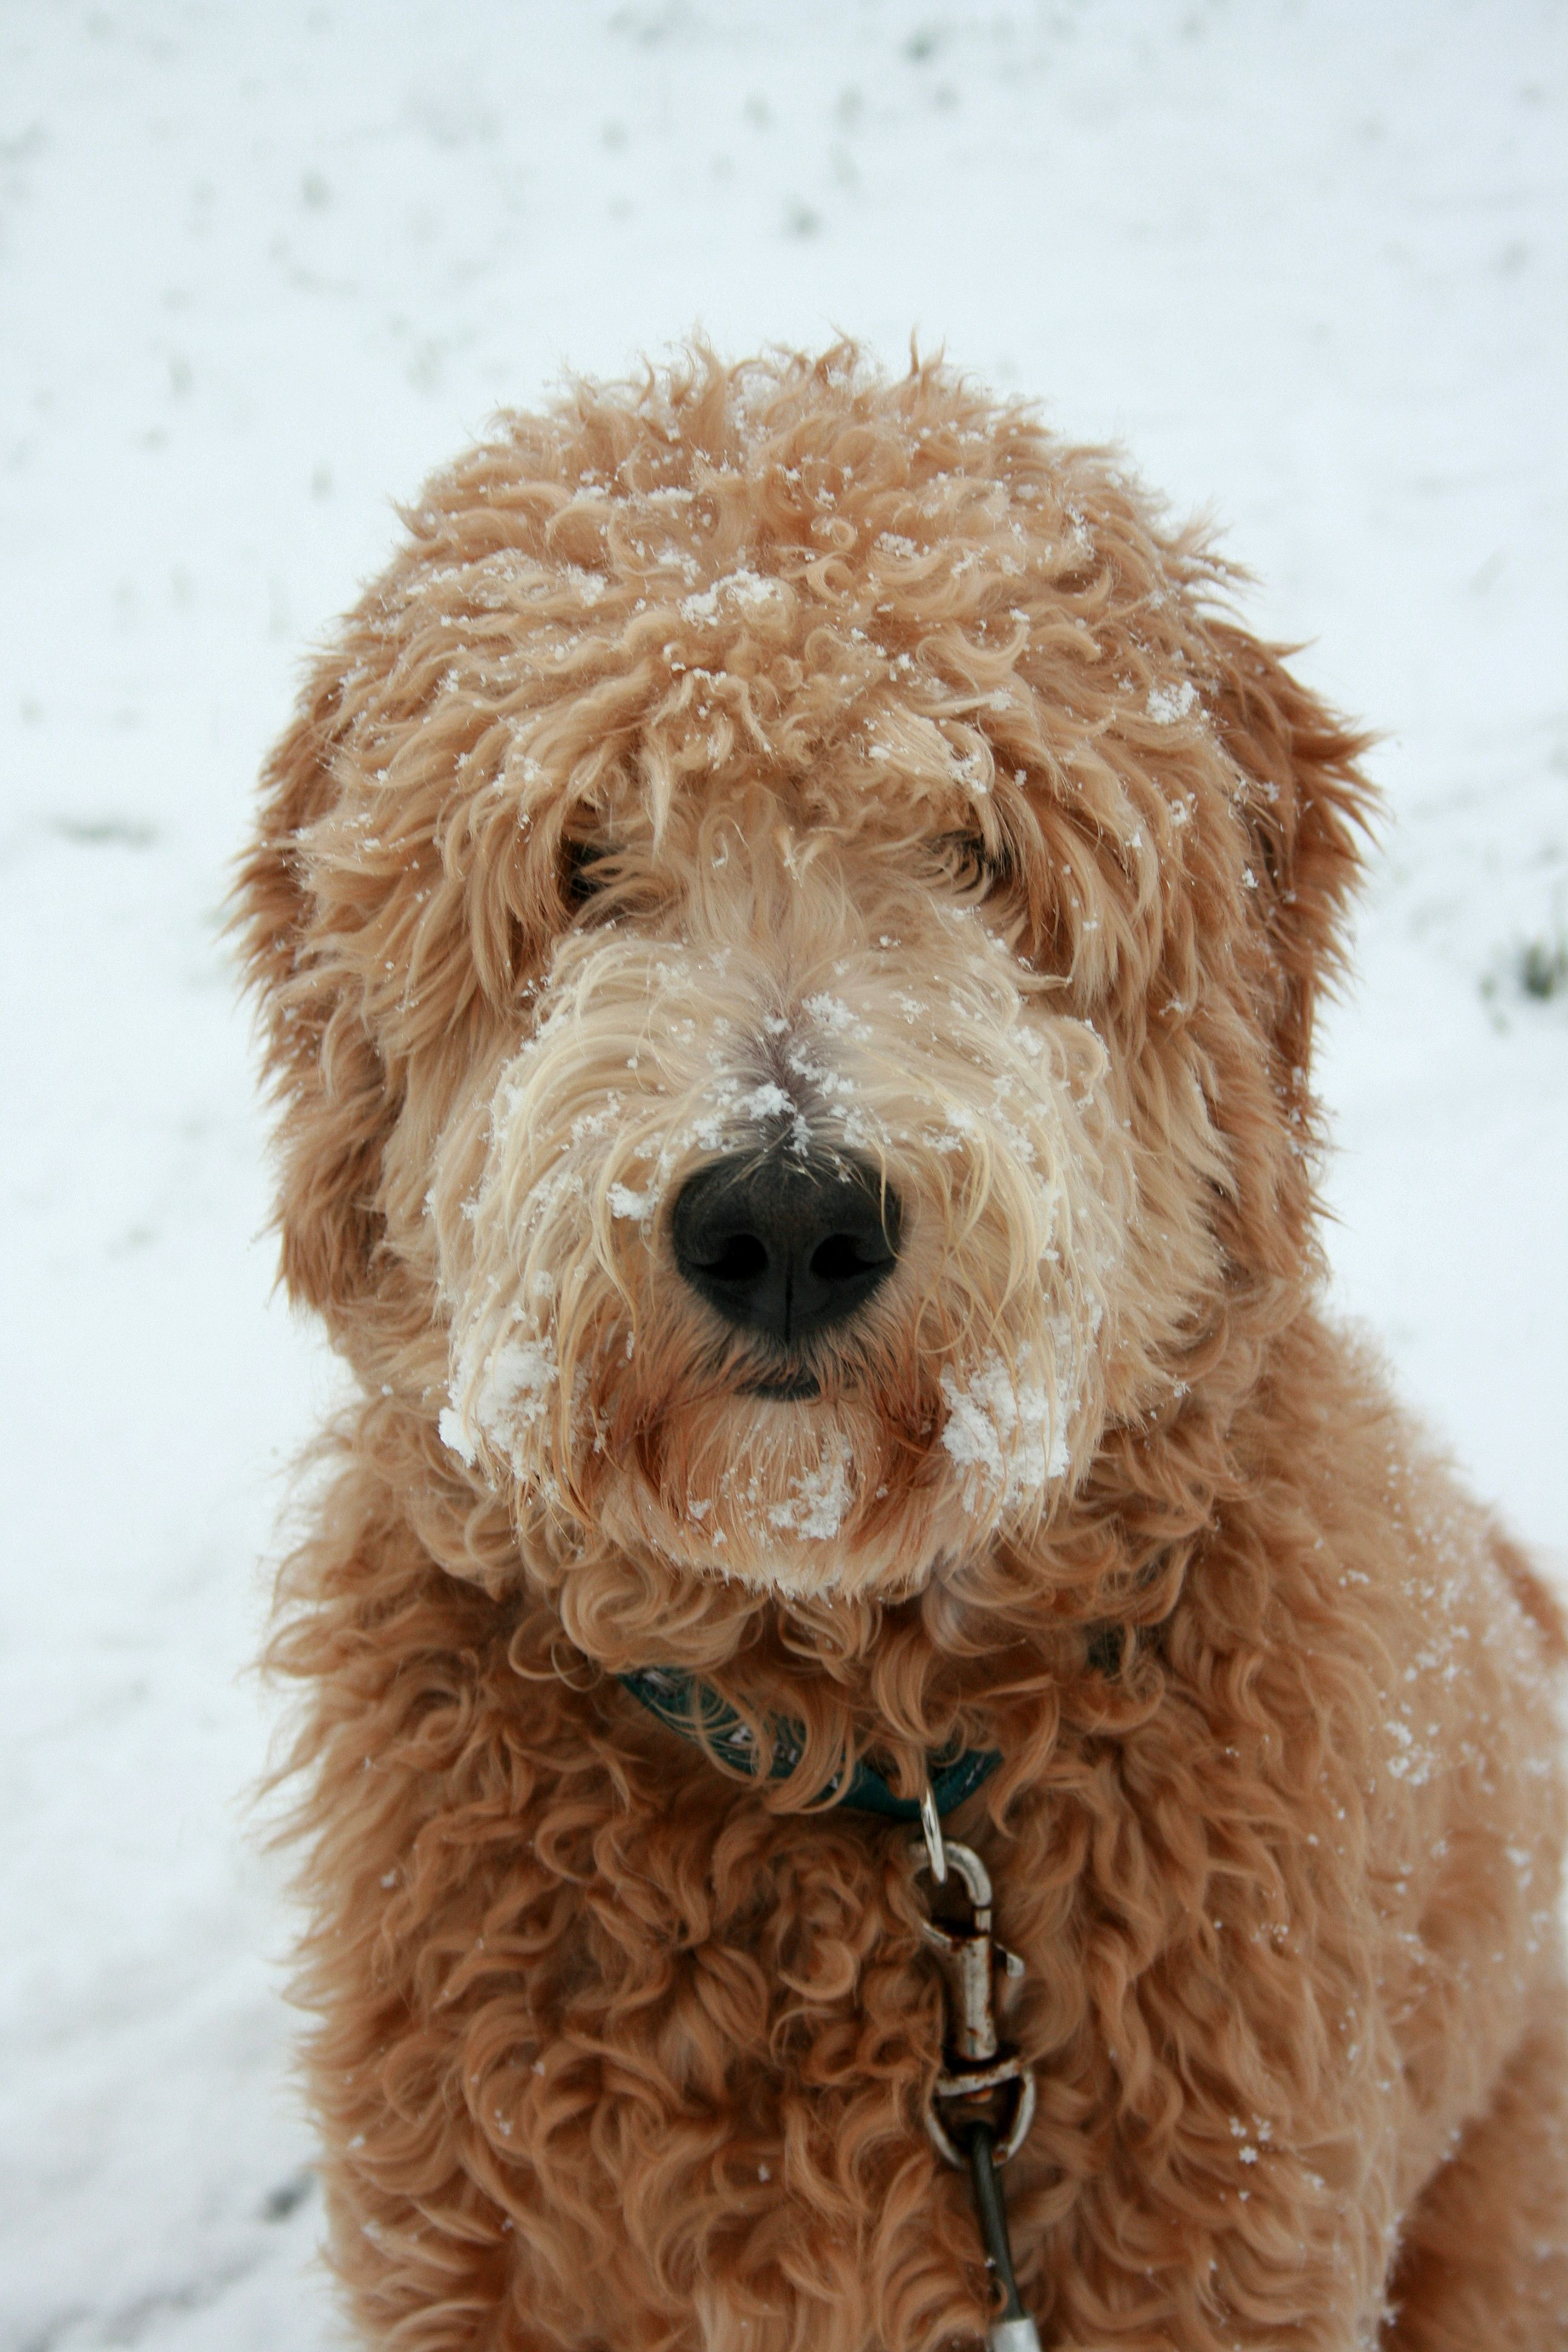 Semi Short Haircut On A Goldendoodle Goldendoodles | semi short haircut on a goldendoodle goldendoodle